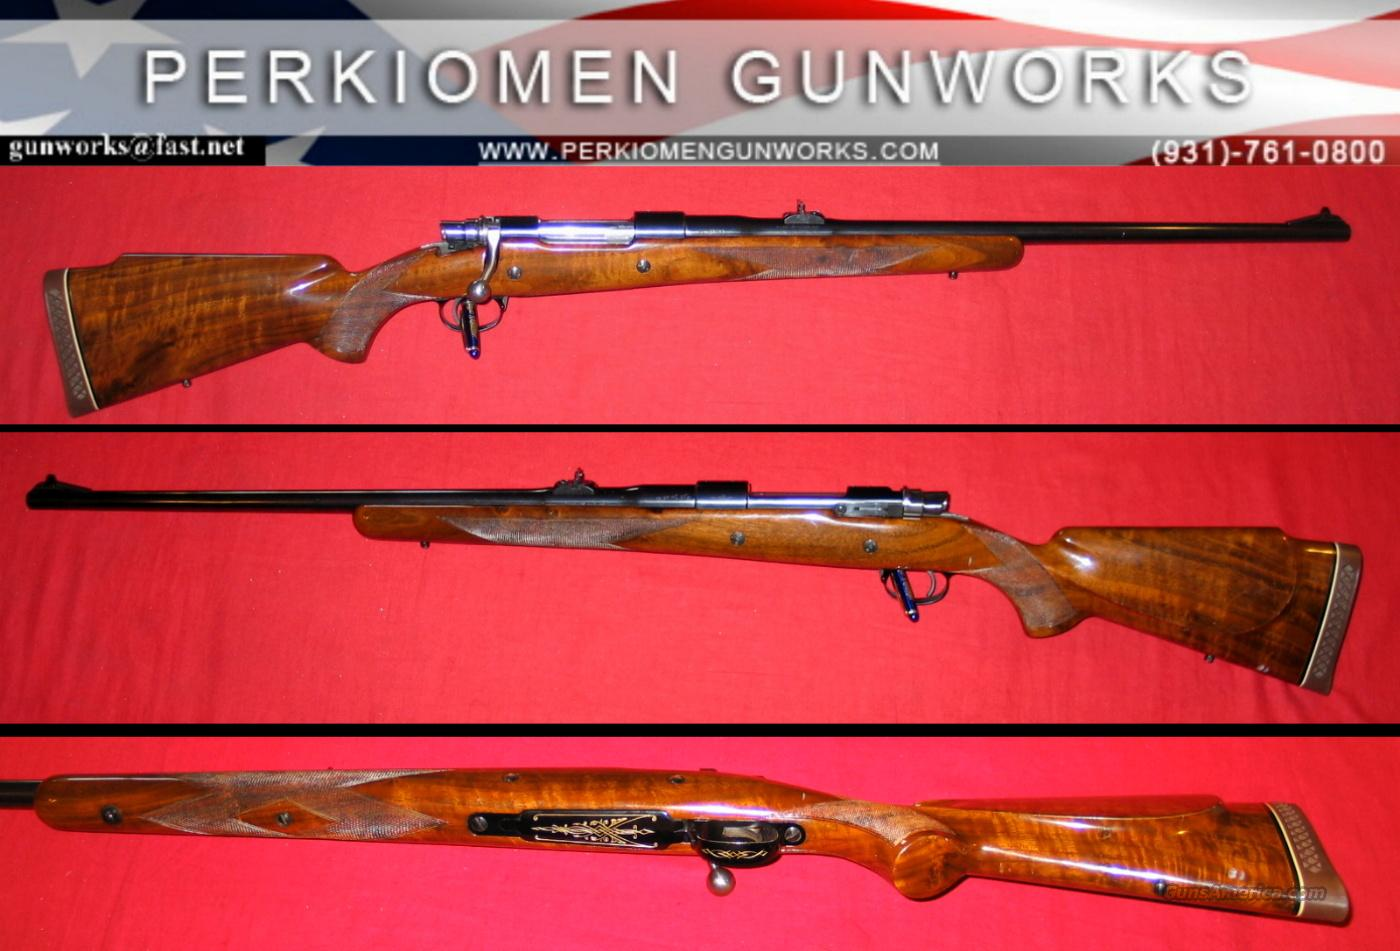 Safari .458 Win Mag - Clean 1965 gun!!  Guns > Rifles > Browning Rifles > Bolt Action > Hunting > Blue